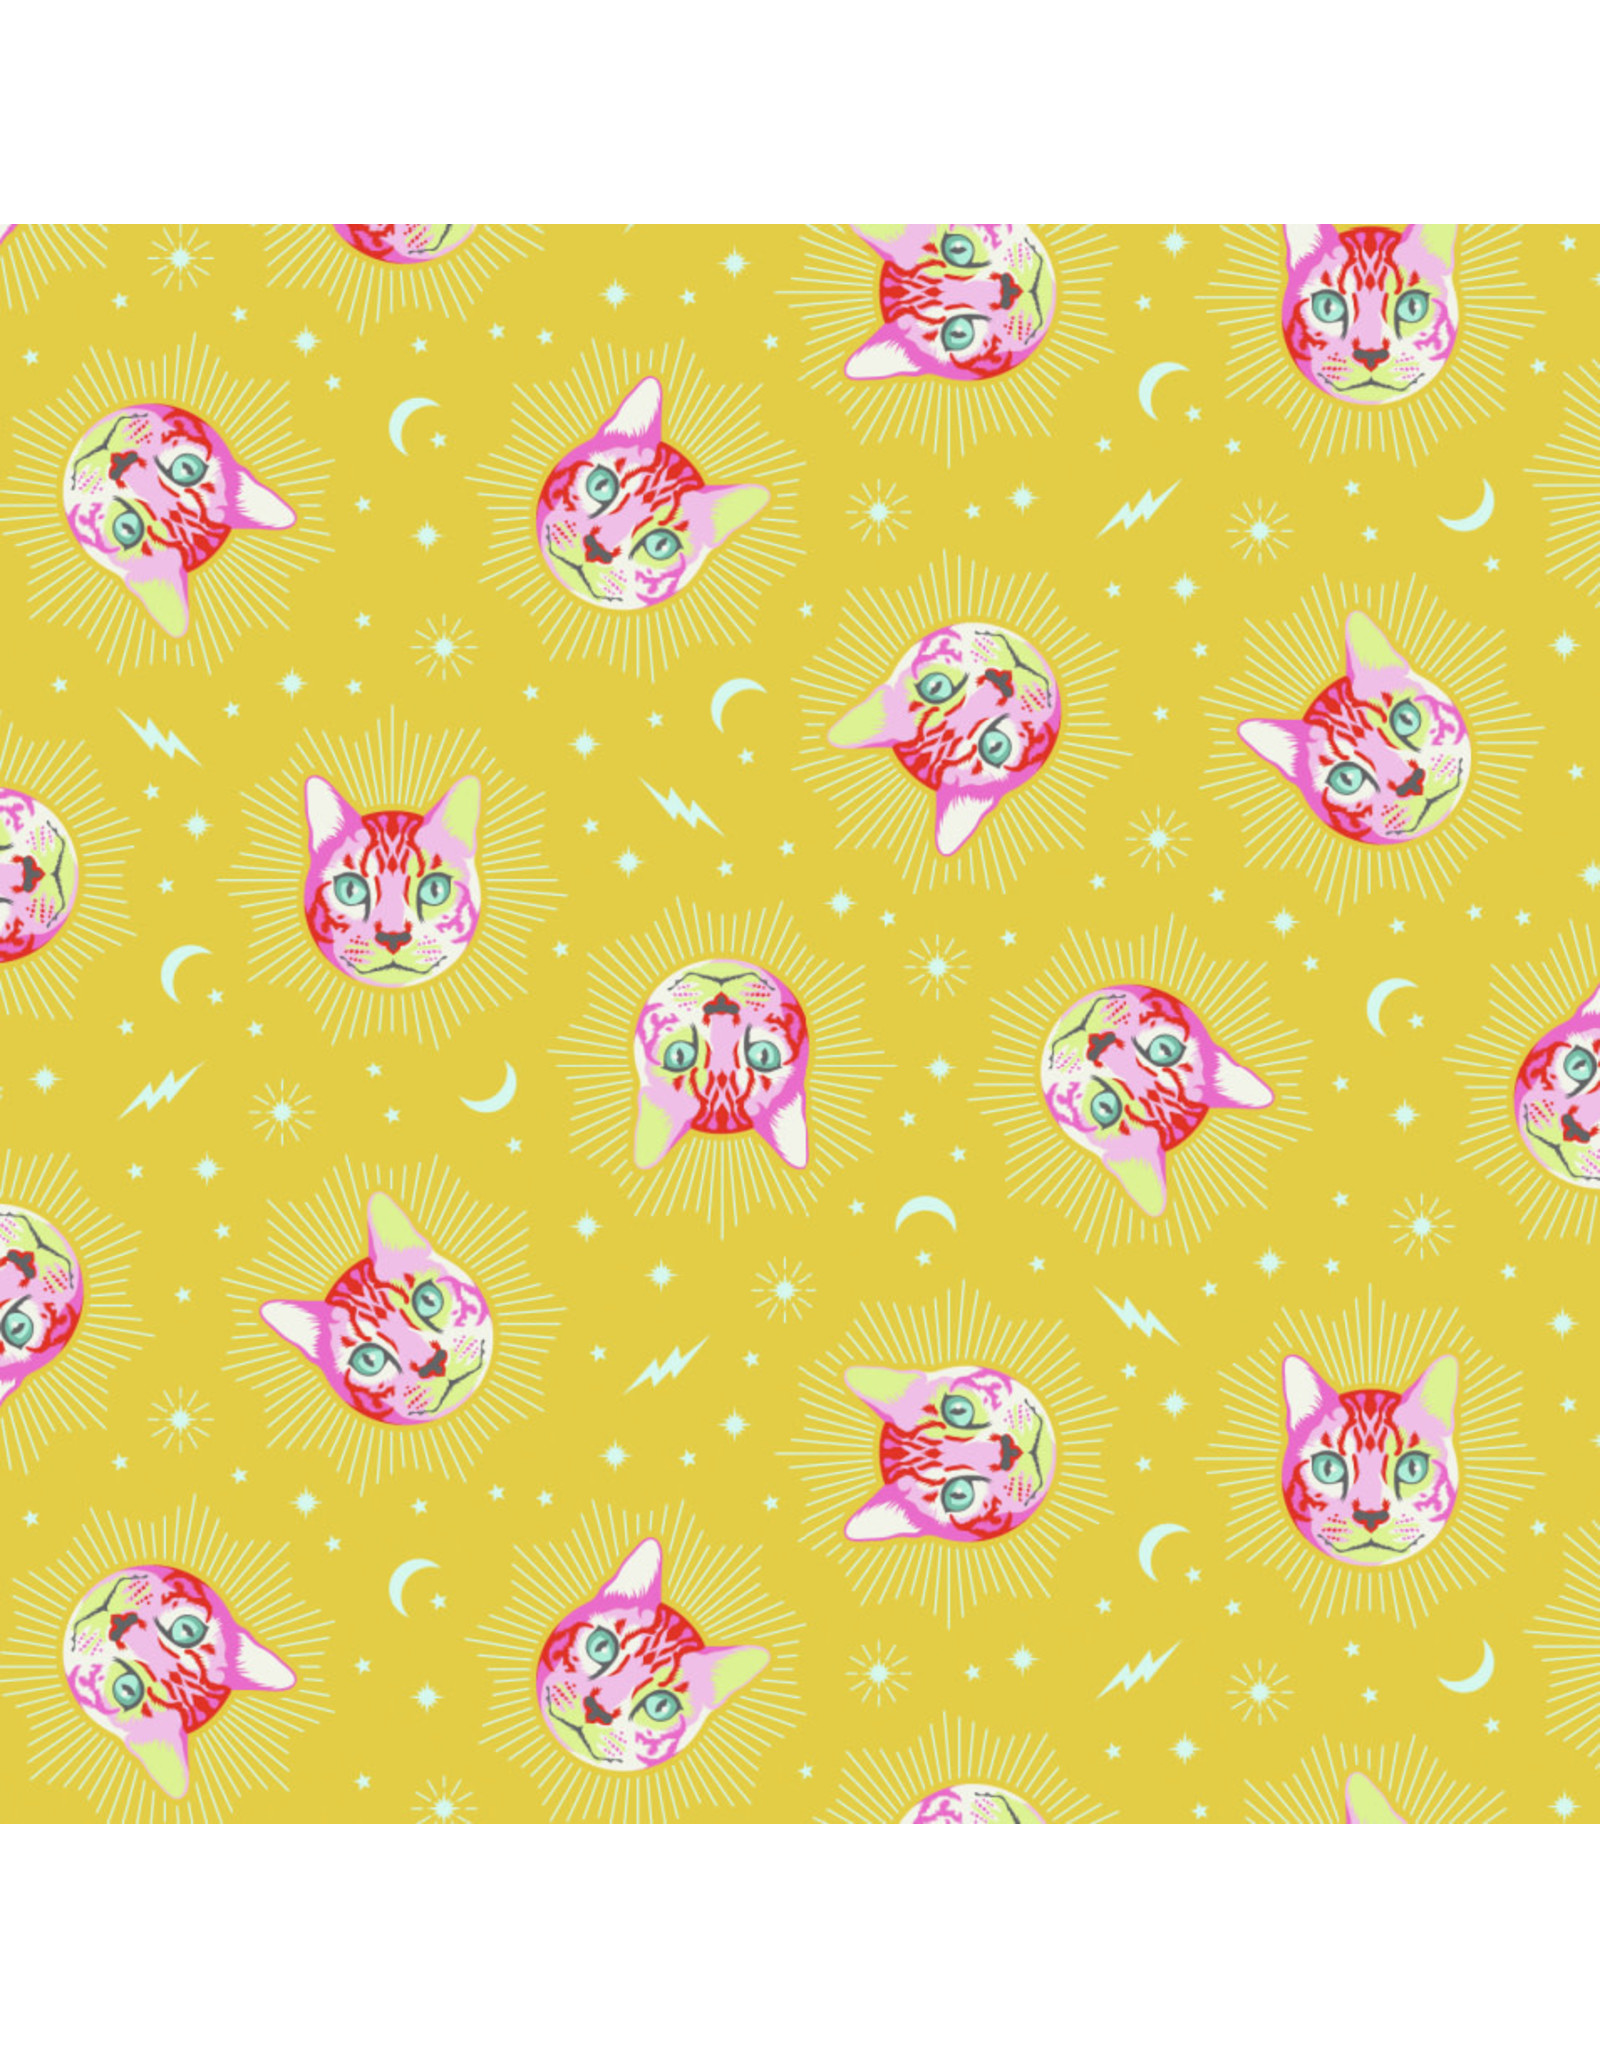 Tula Pink Curiouser and Curiouser, Cheshire in Wonder, Fabric Half-Yards